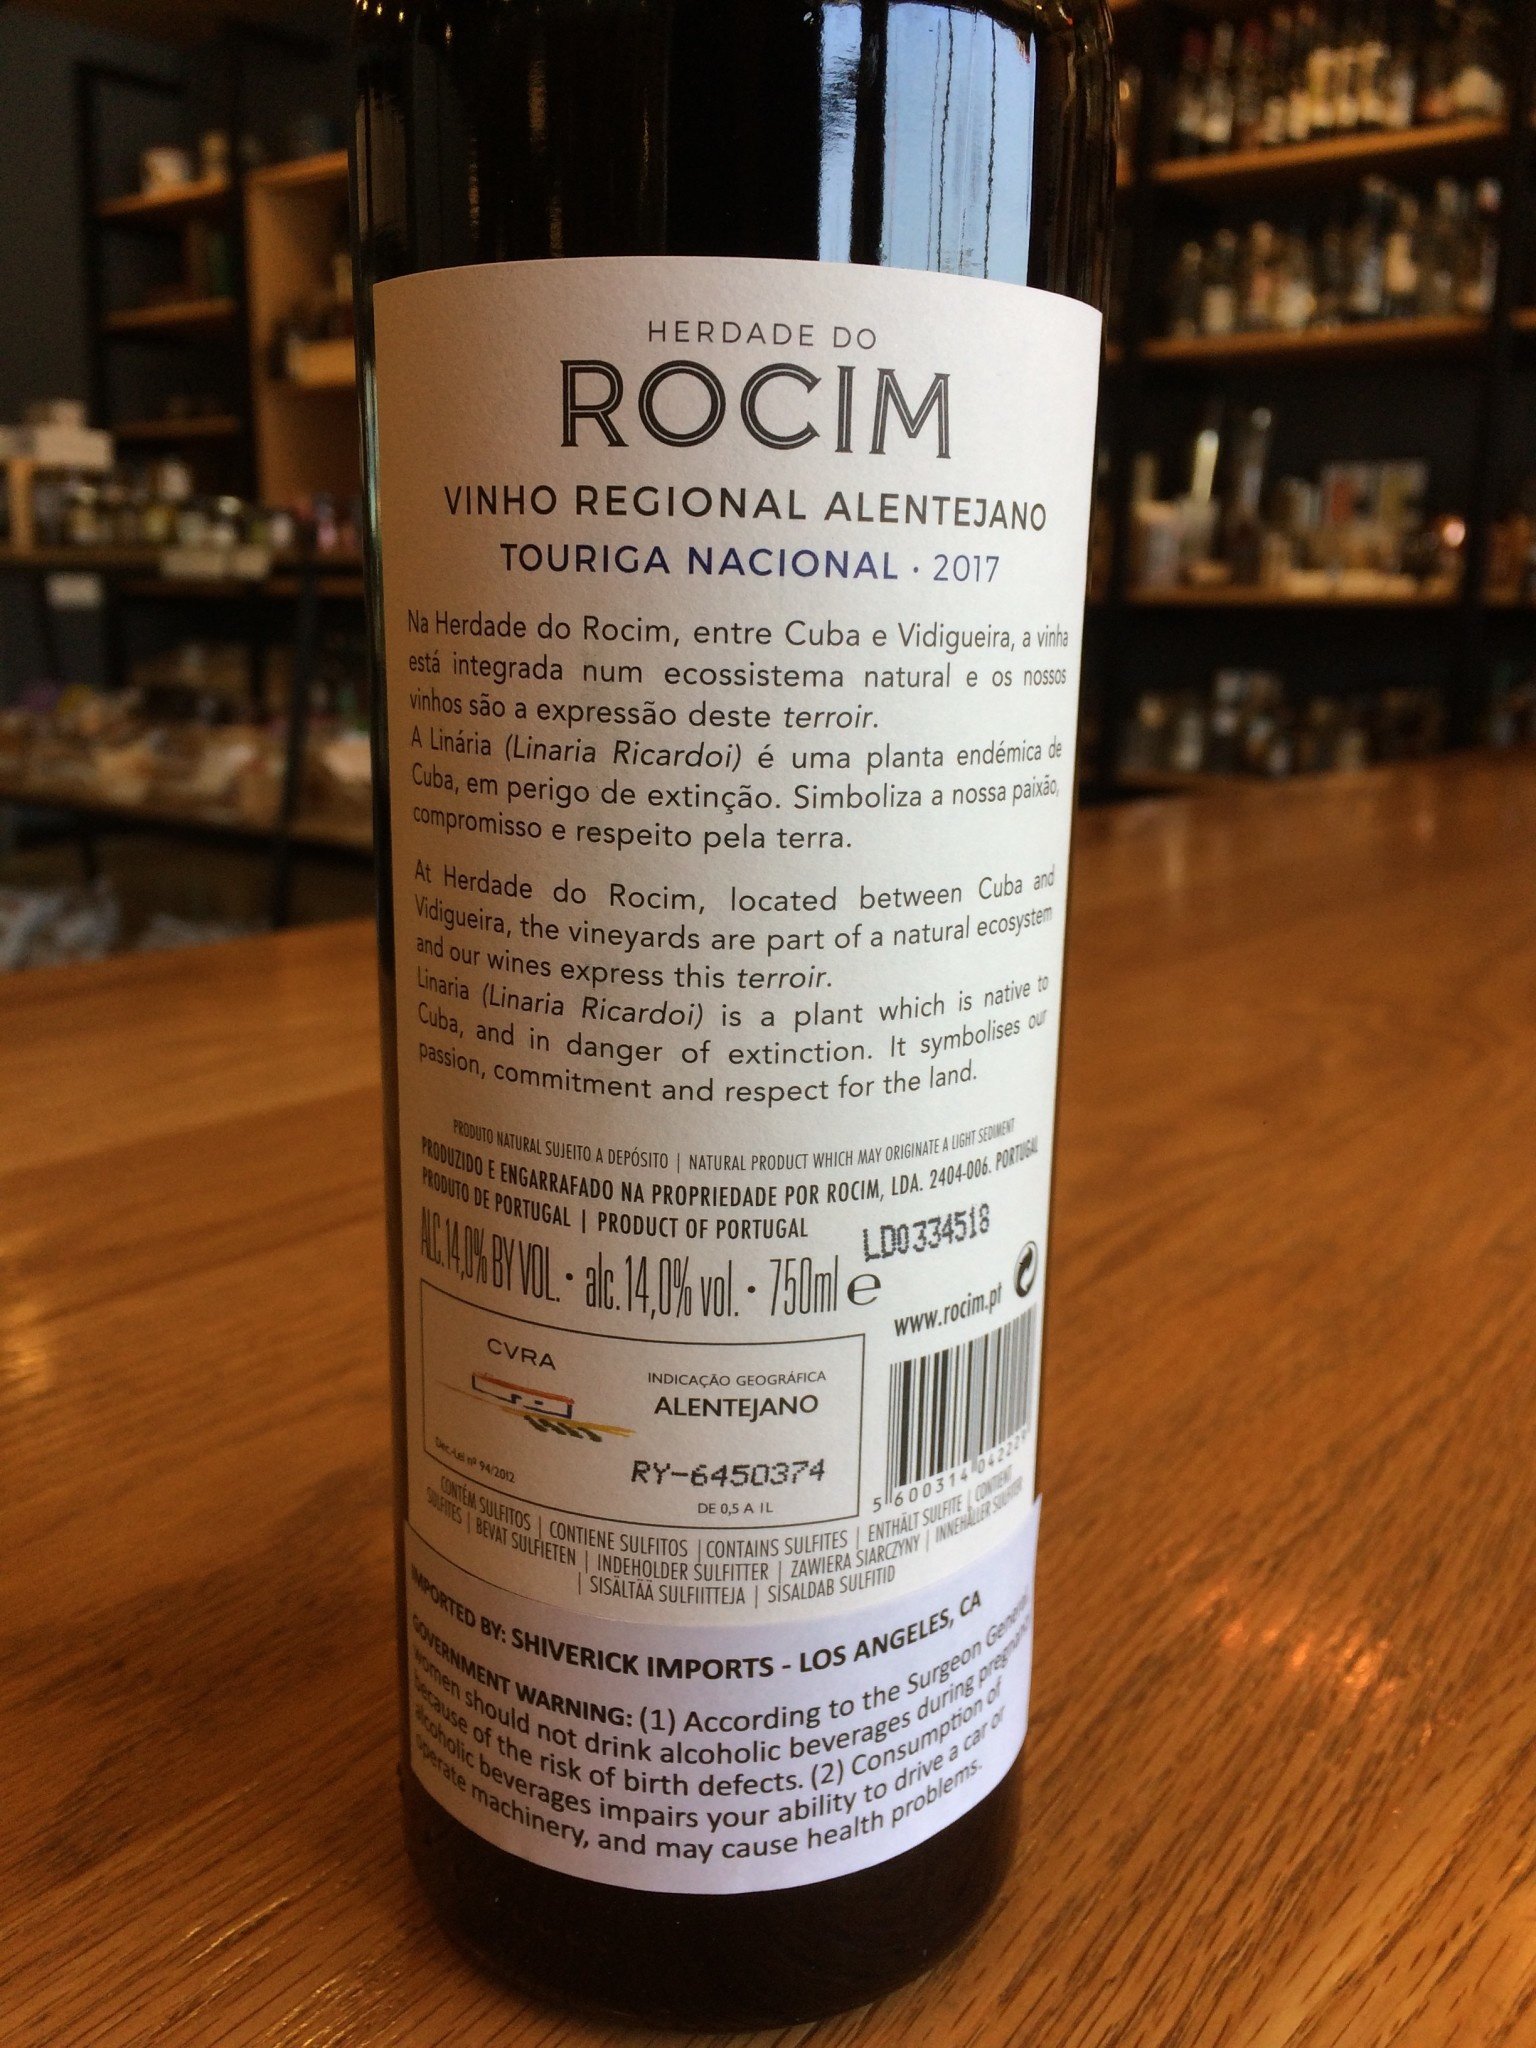 Herdade do Rocim 2017 Herdade do Rocim Touriga Nacional 750ml